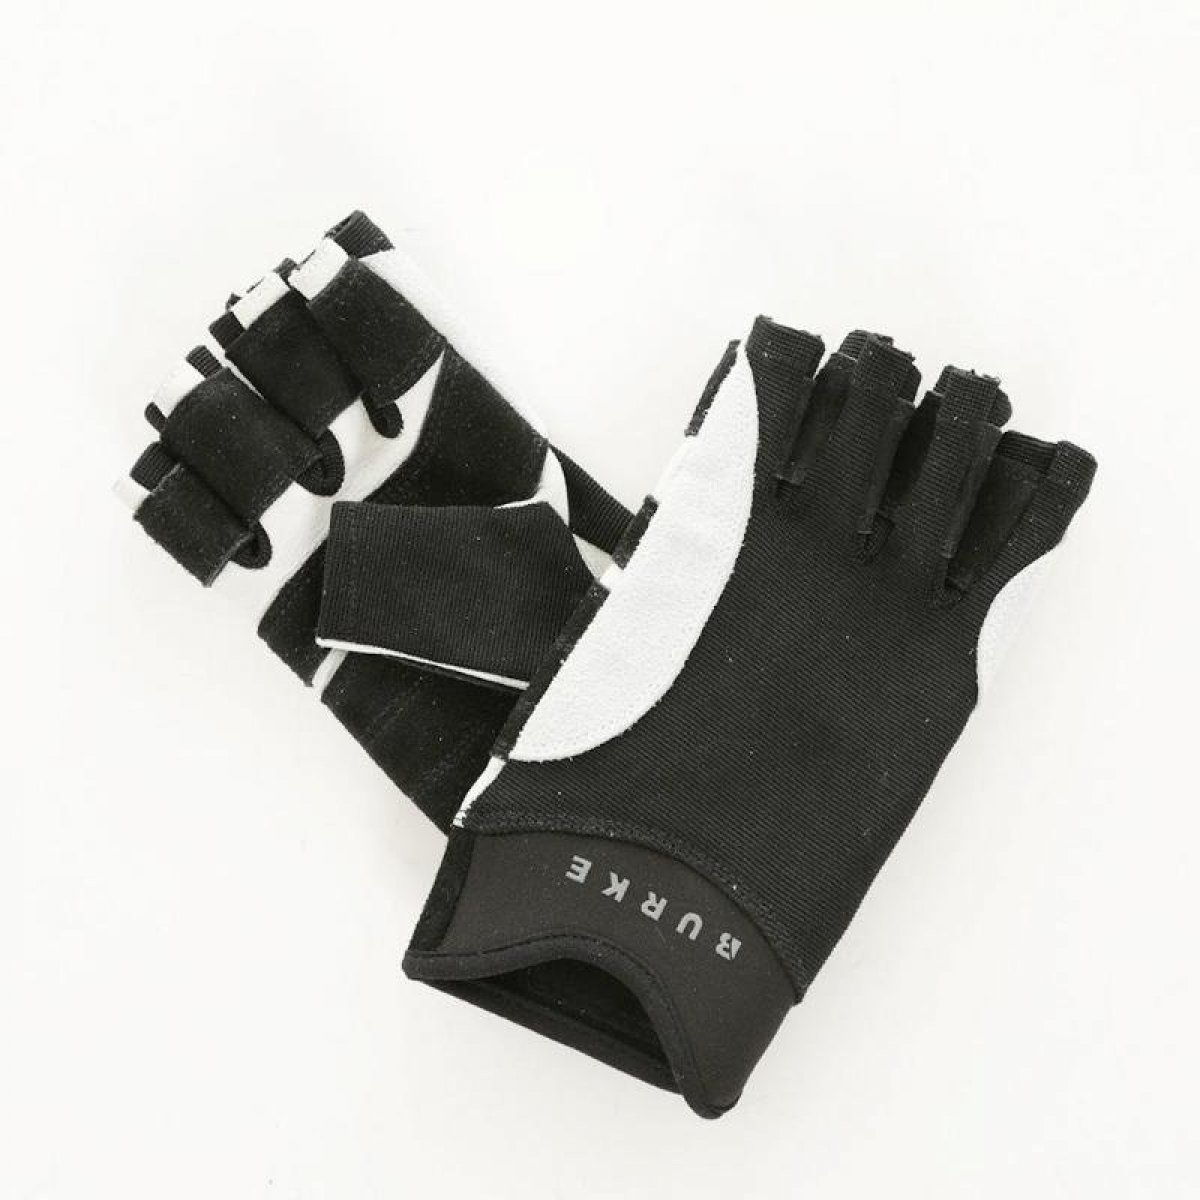 BURKE SAILING LEATHER SAILING GLOVES - ONLY $ 22.00